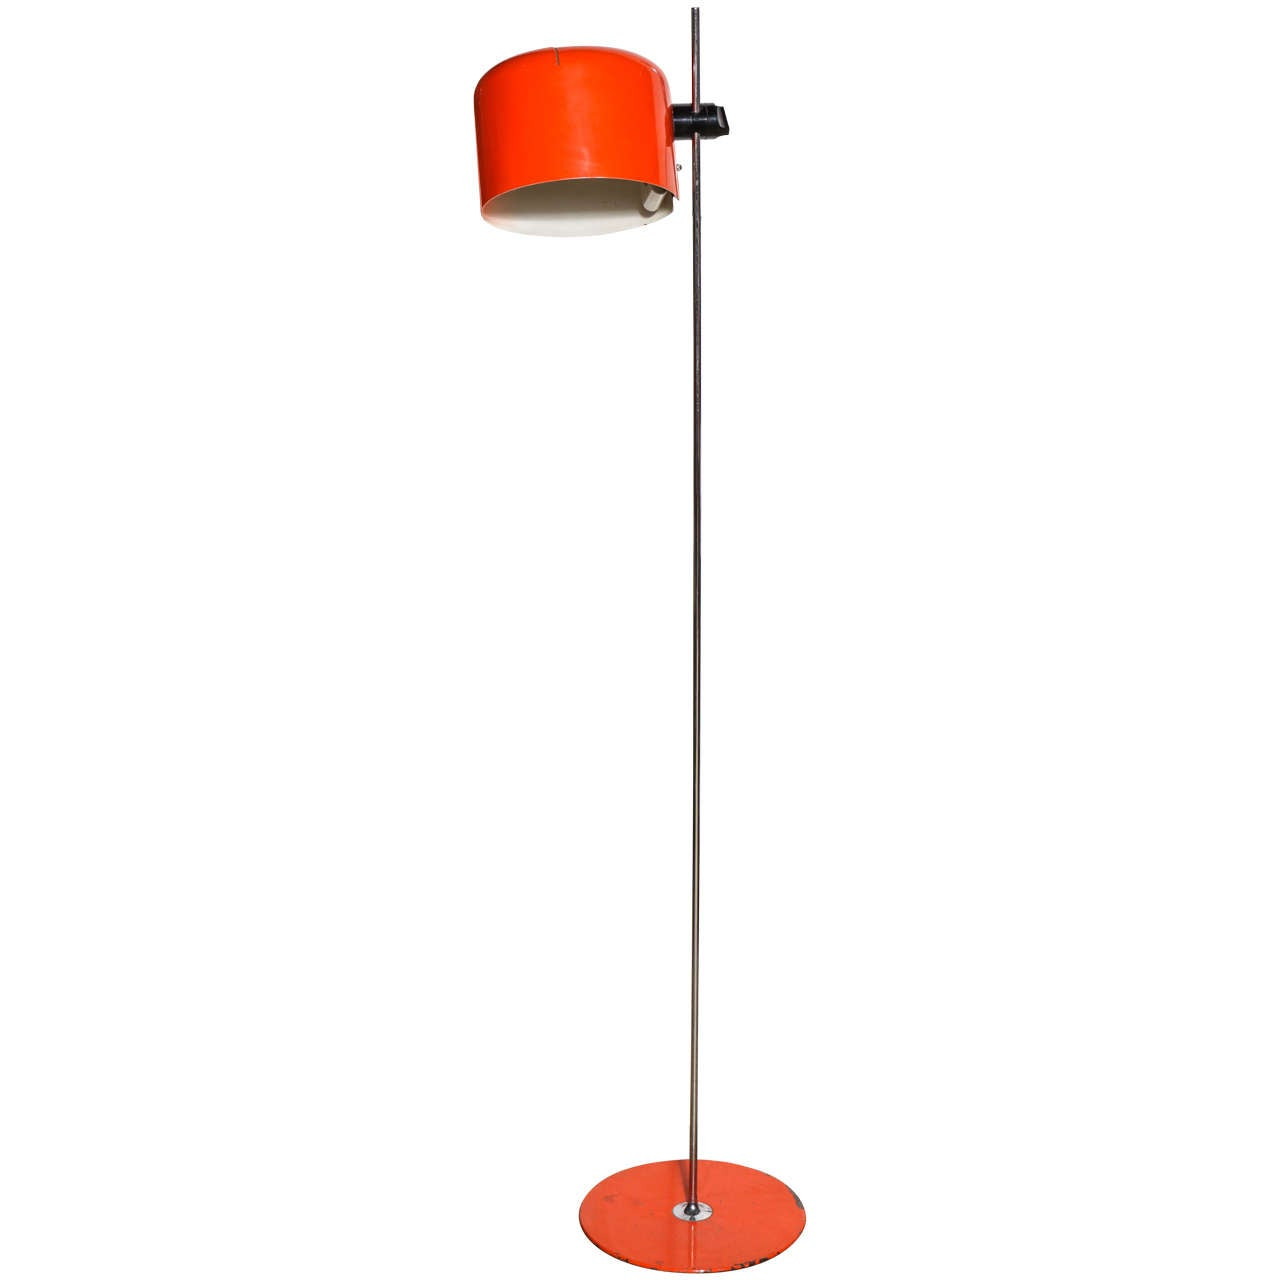 's joe colombo for oluce coupe floor lamp with orange shade  - 's joe colombo for oluce coupe floor lamp with orange